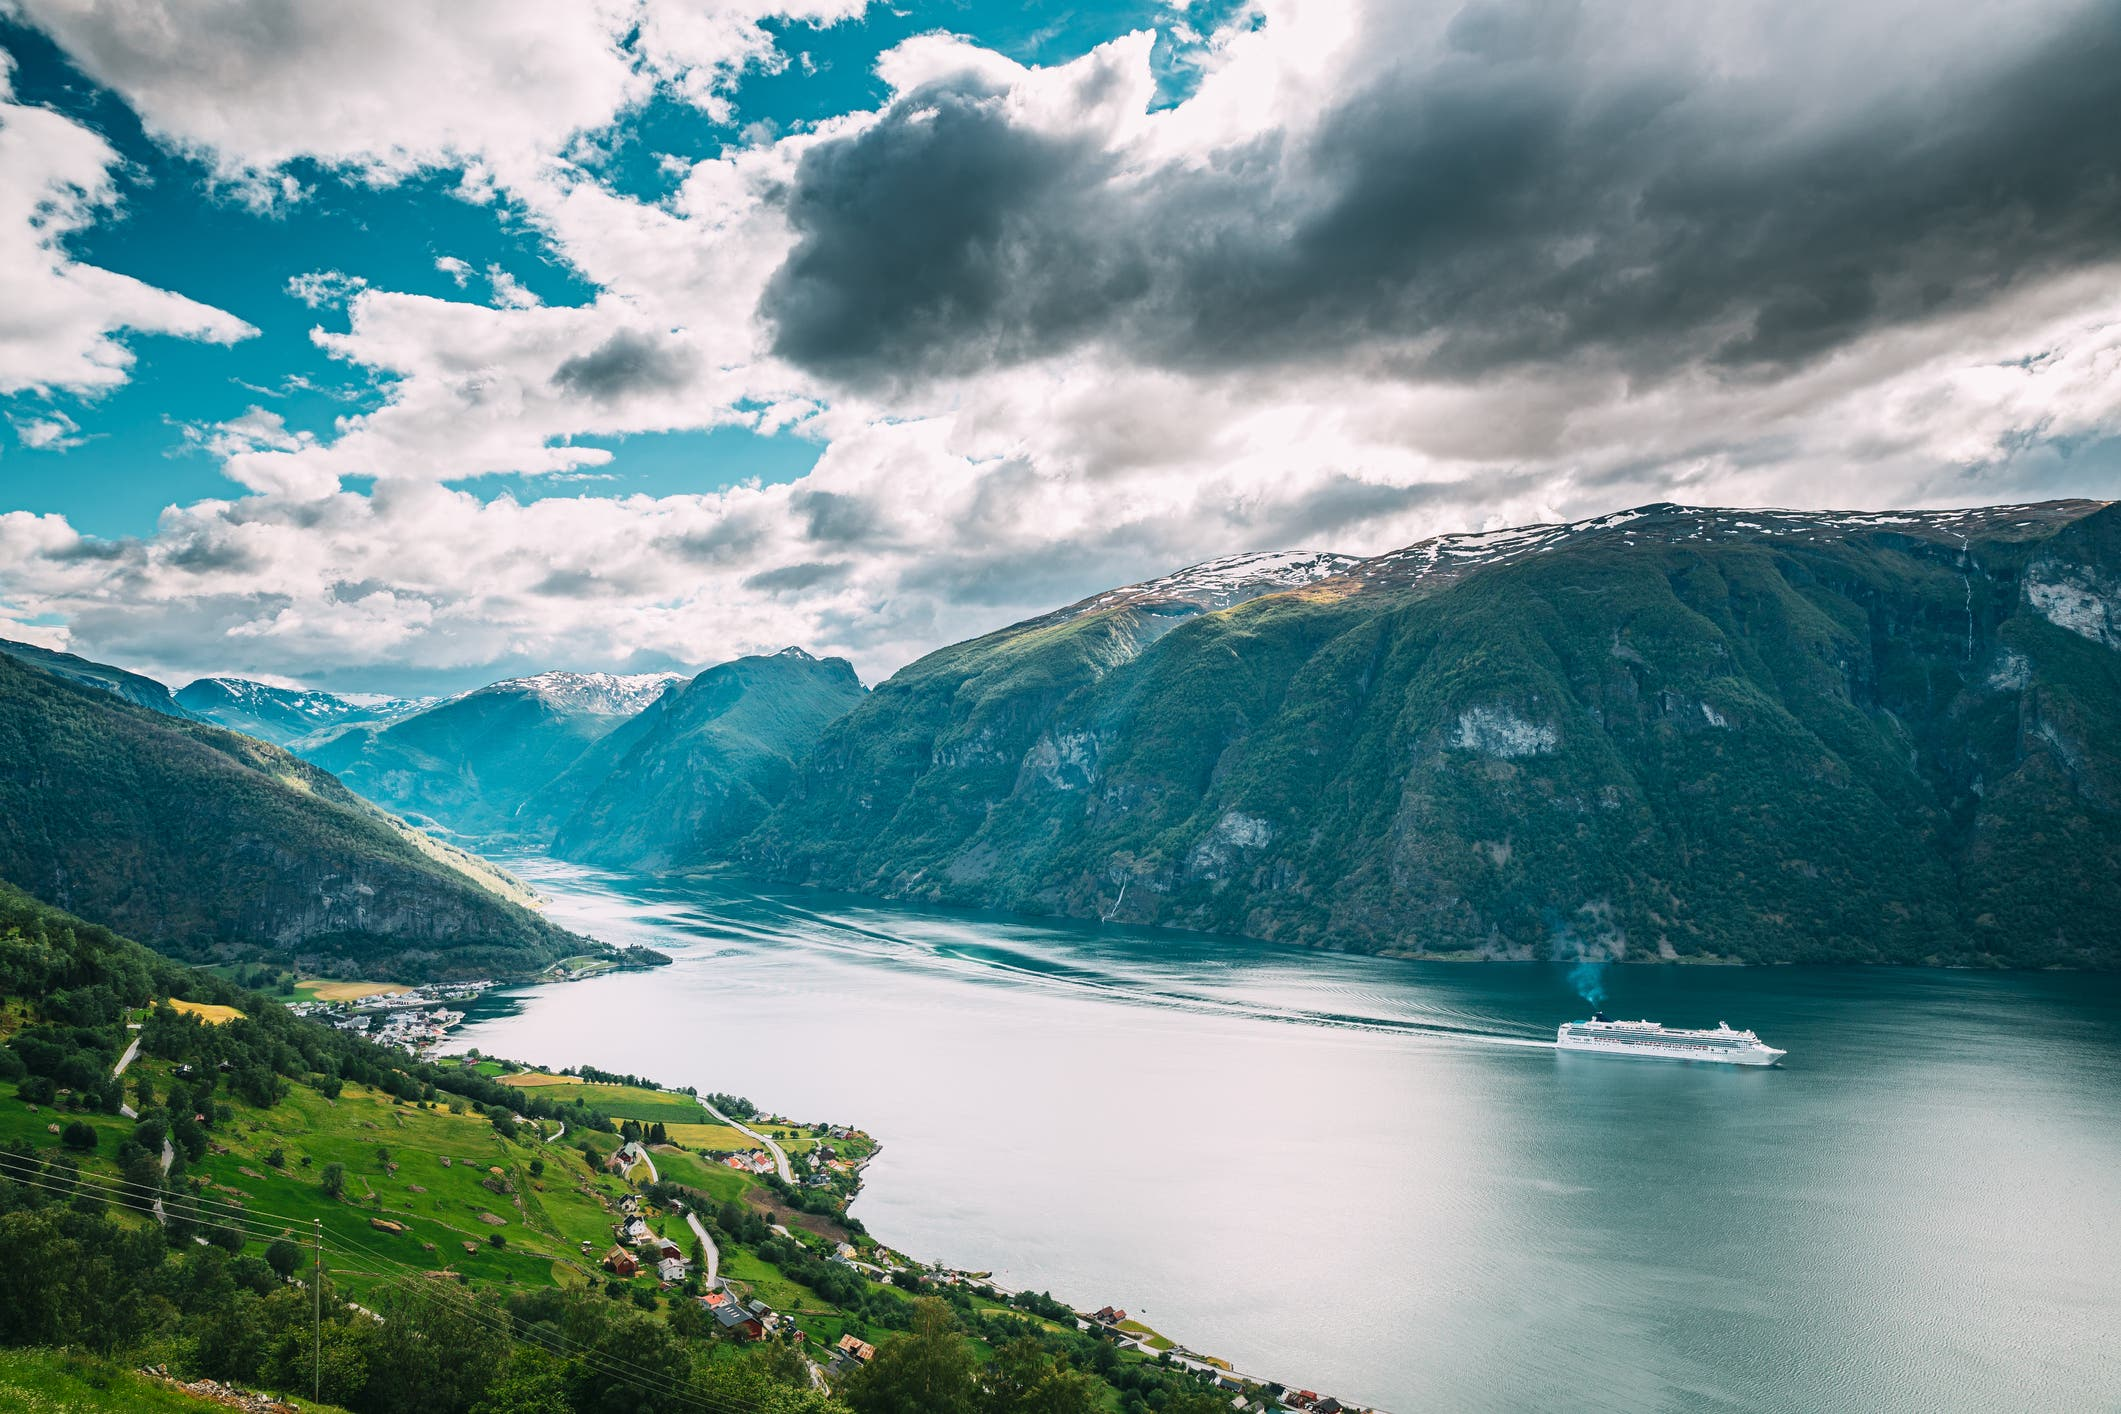 Aurland Sogn And Fjordane Fjord Norway Amazing Summer Scenic View Of Sogn Og Fjordane Ship Or Ferry Boat Liner Floating In Famous Norwegian Natural Landmark And Popular Destination In Summer Day